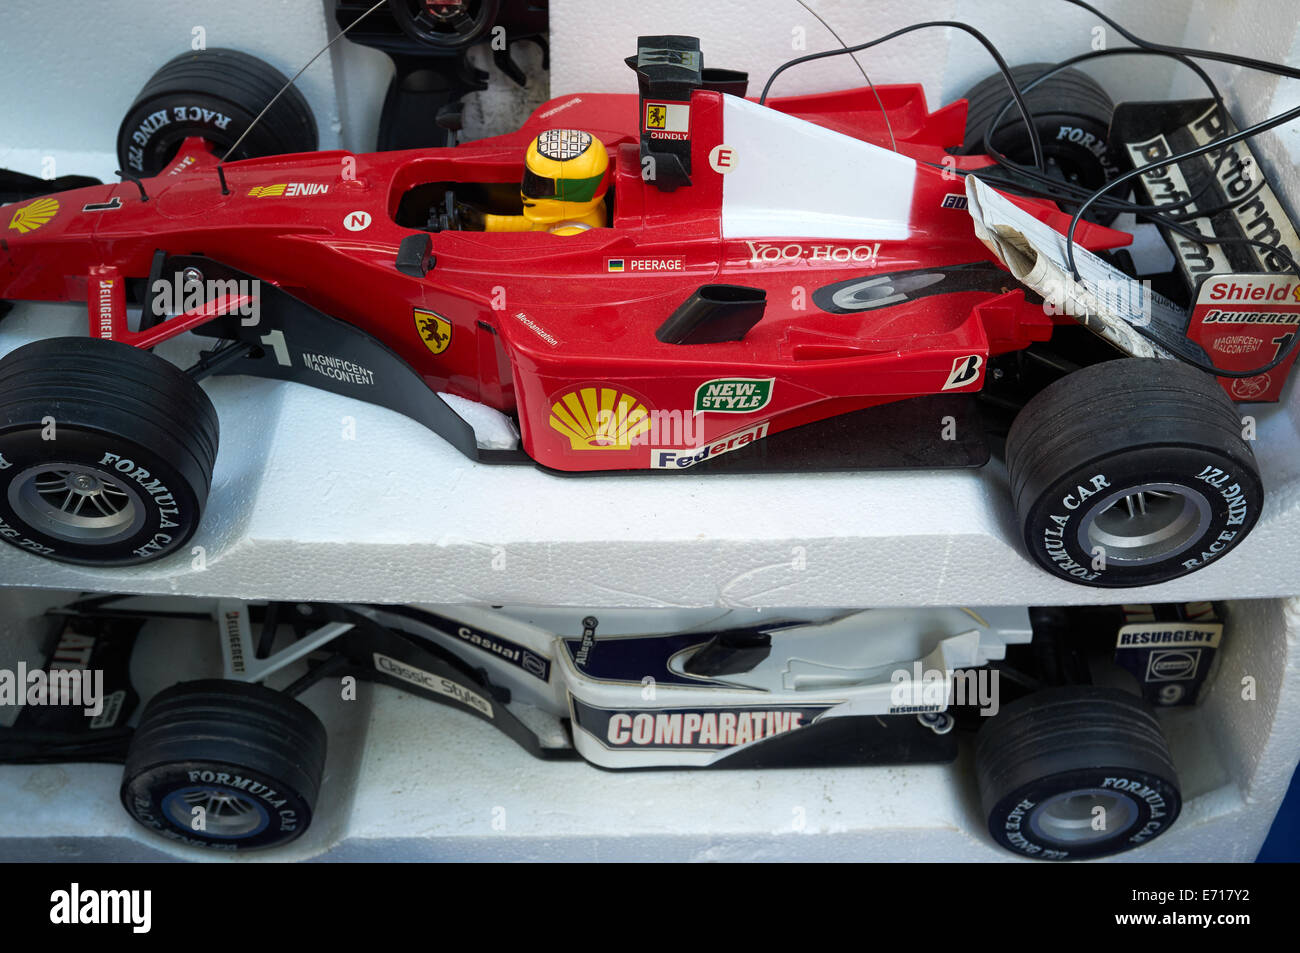 Secondhand radio controlled F1 model cars at a flea market - Stock Image